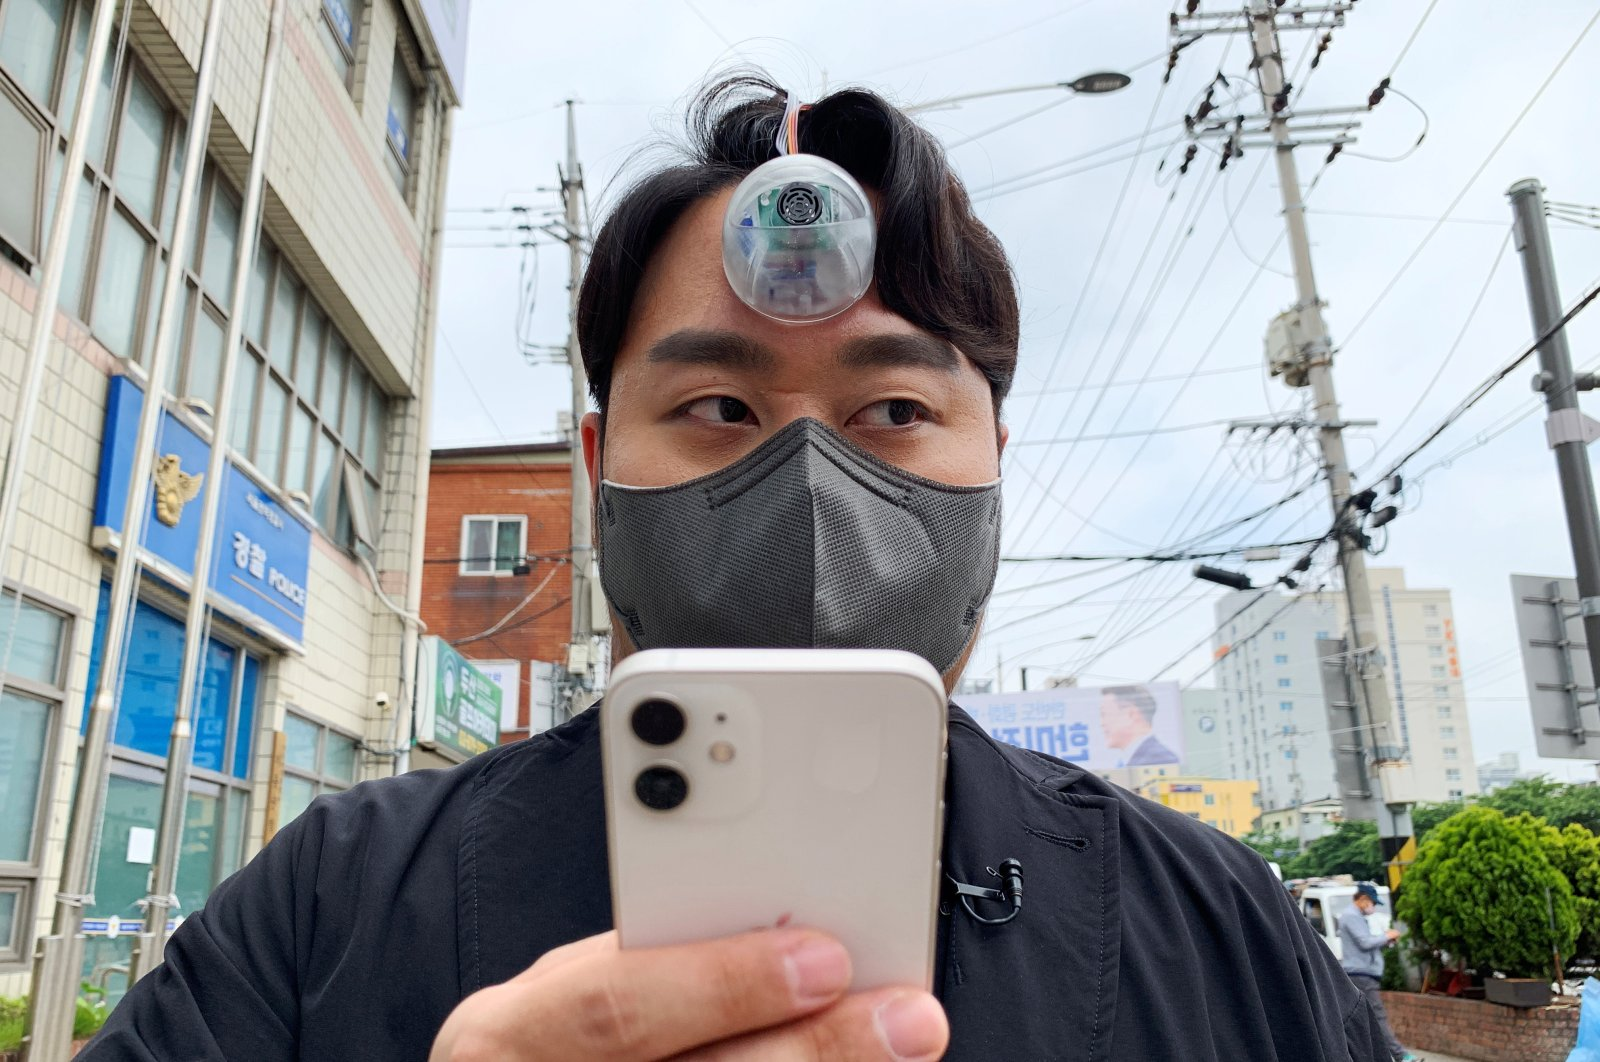 """South Korean industrial designer Paeng Min-wook showcases a robotic eye, called """"The Third Eye,"""" on his forehead as he uses his mobile phone while walking on the street, in Seoul, South Korea, March 31, 2021. (Reuters Photo)"""